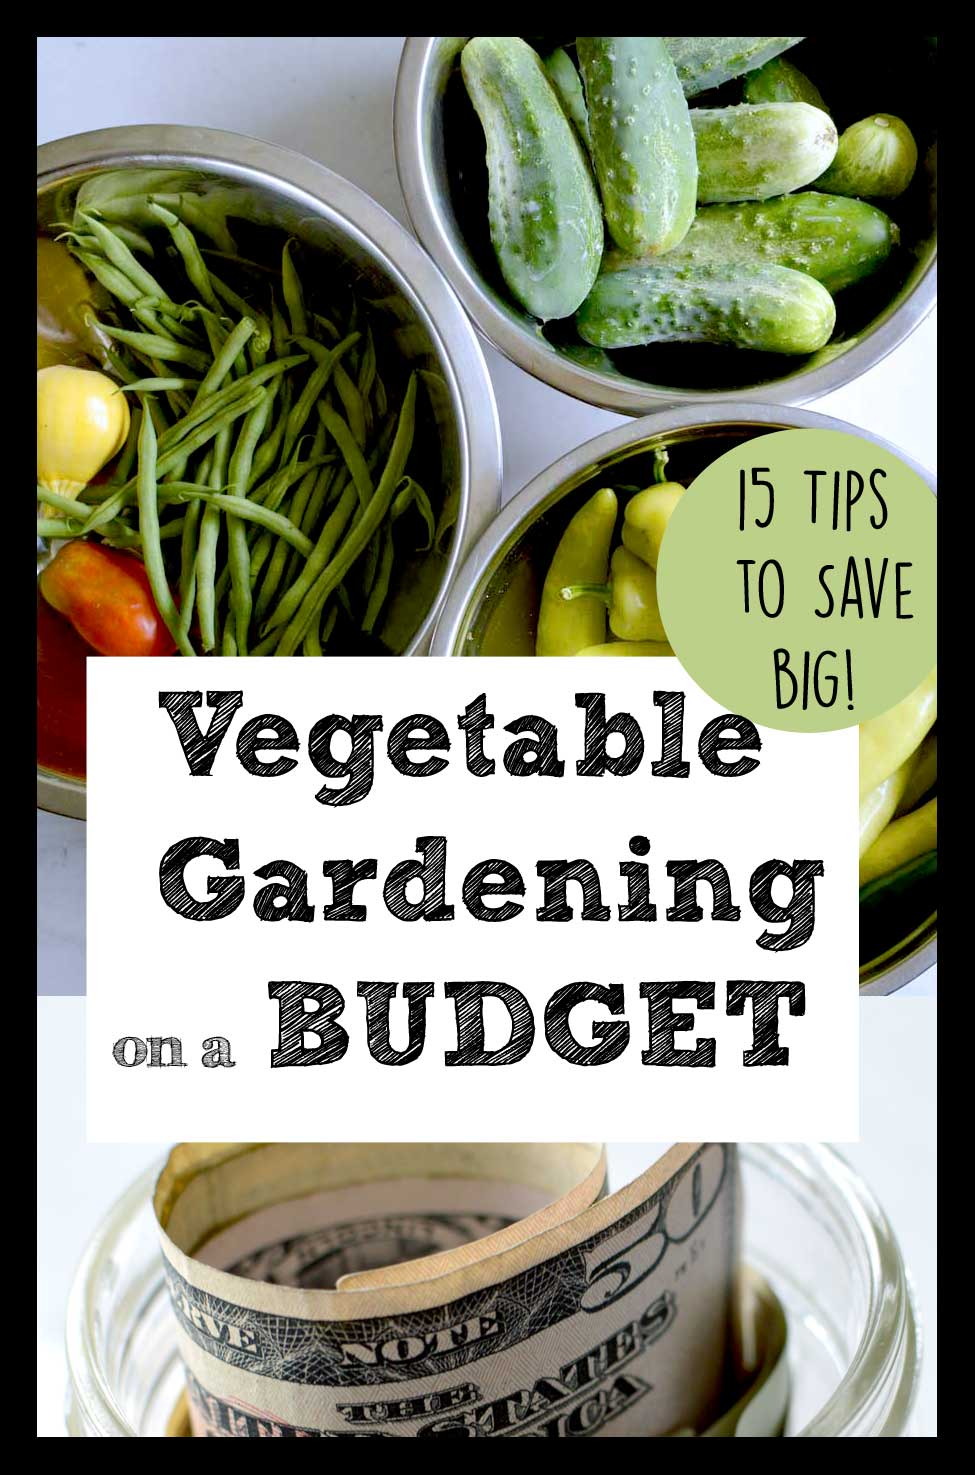 Vegetable-Gardening-on-a-Budget--15-Tips-to-Save-Big.jpg